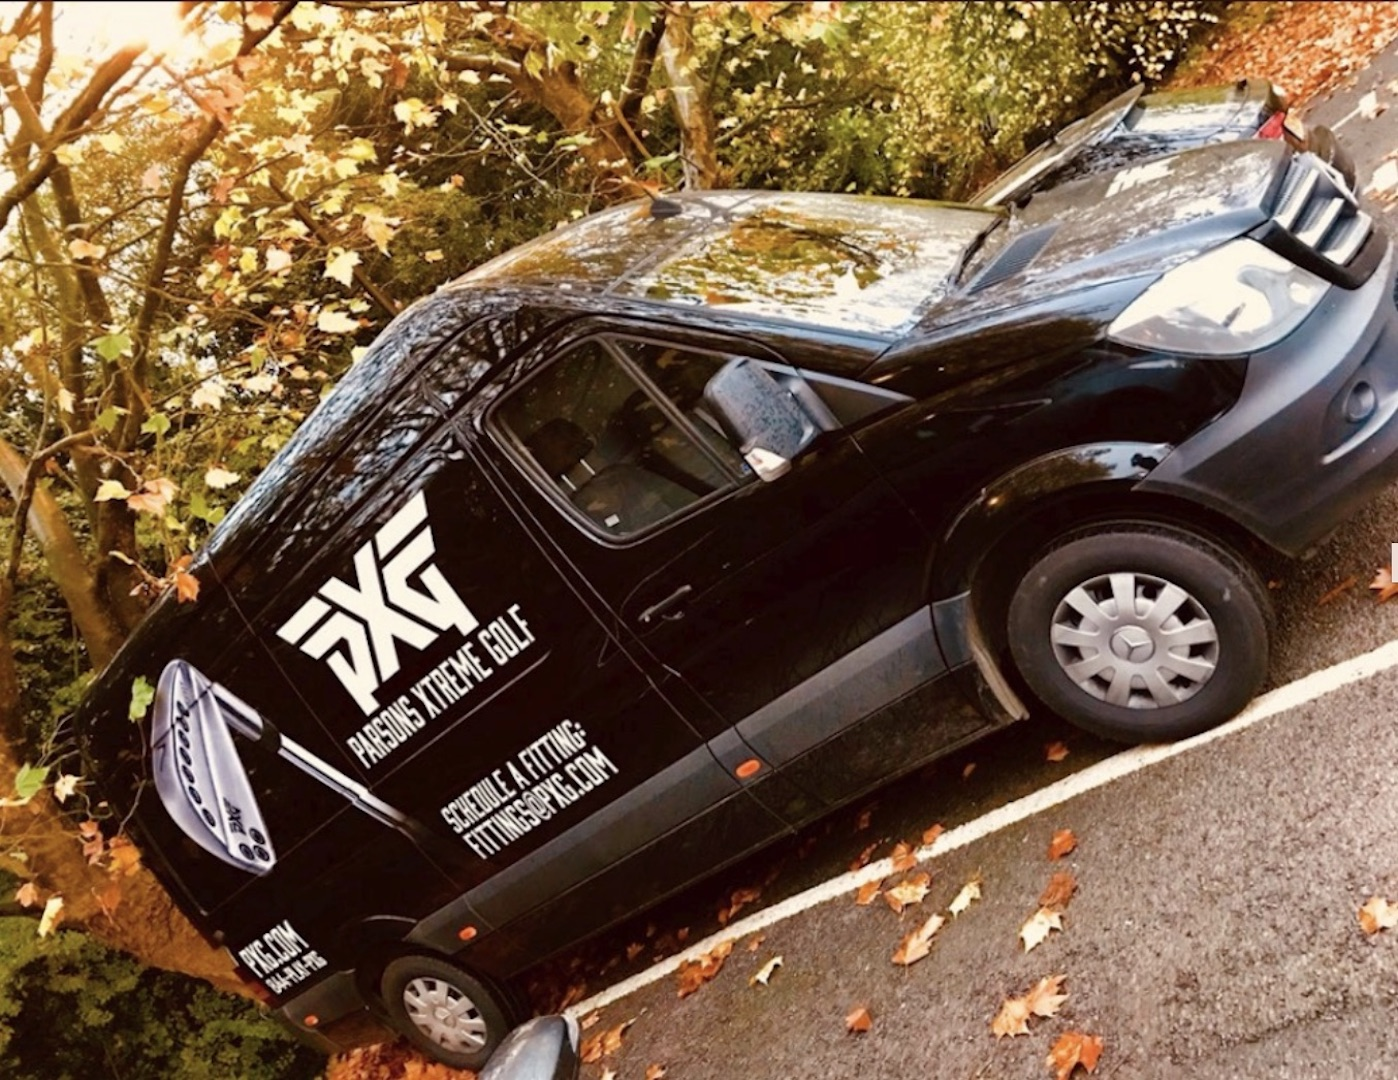 PXG have their only UK van stolen